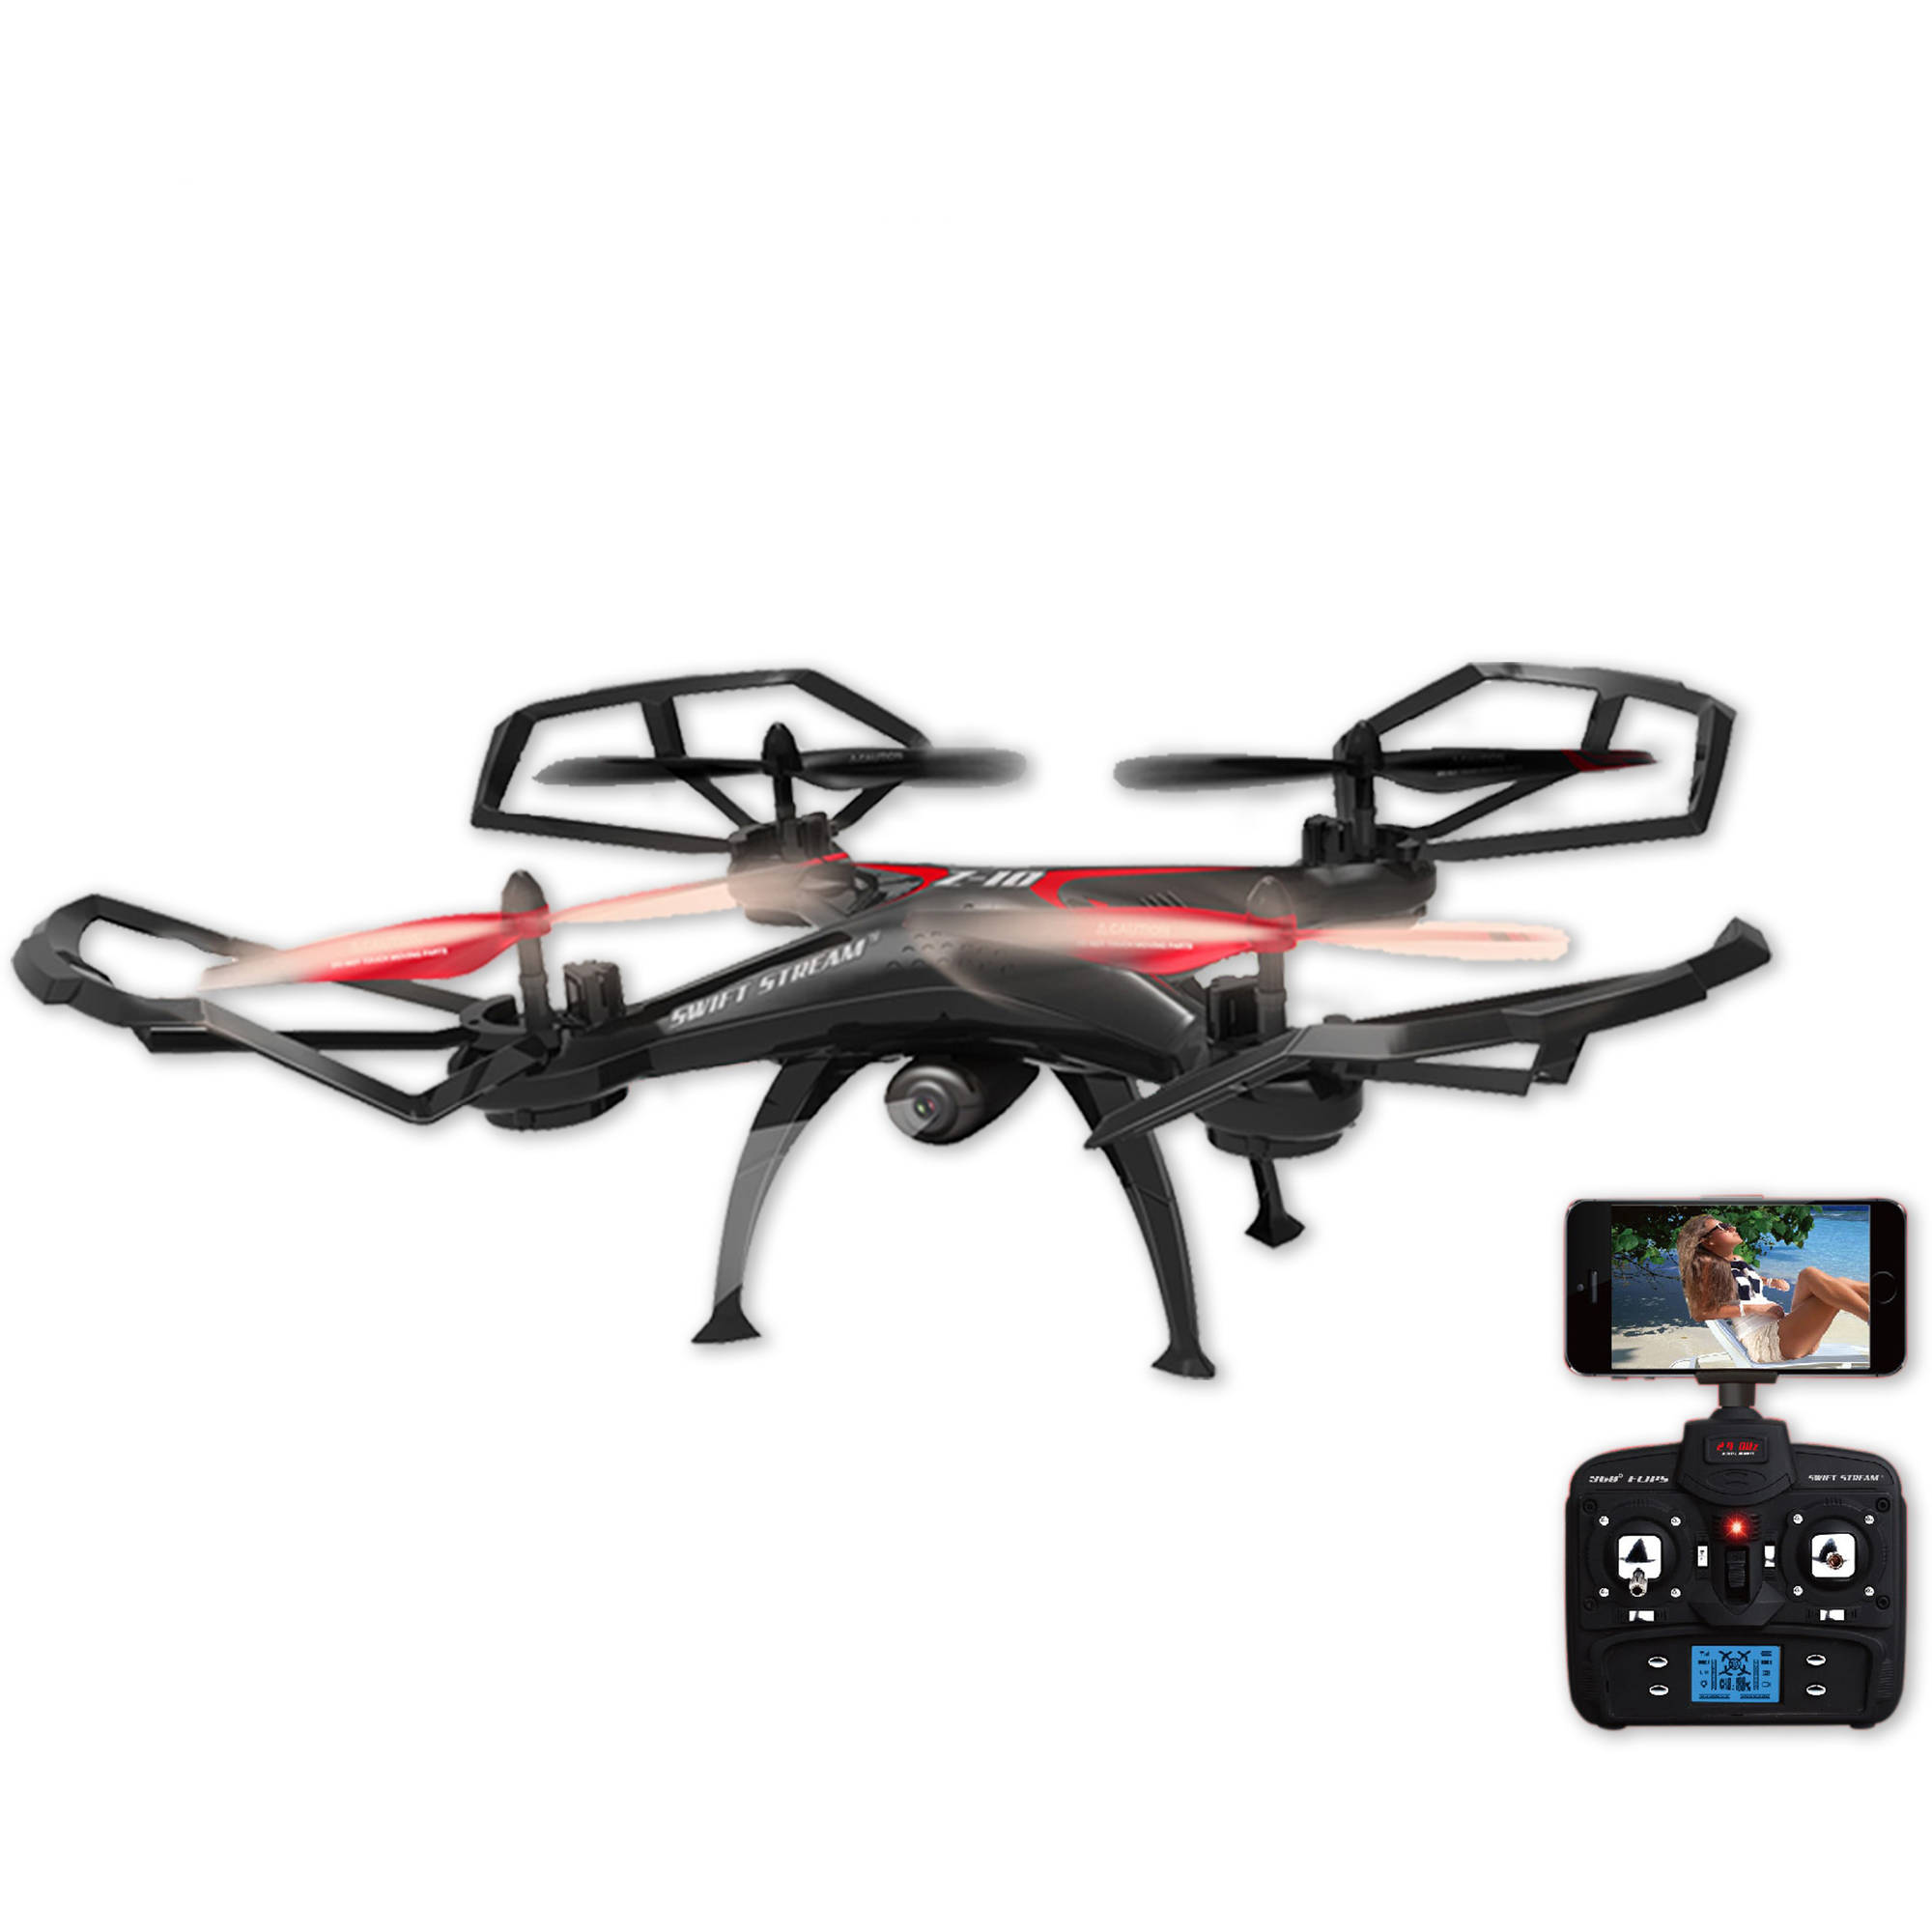 Swift Stream Z-10 Large 19in Hobby Grade Remote Control Quadcopter Drone with Wifi Camera, Black by Abrim Enterprises, Inc.